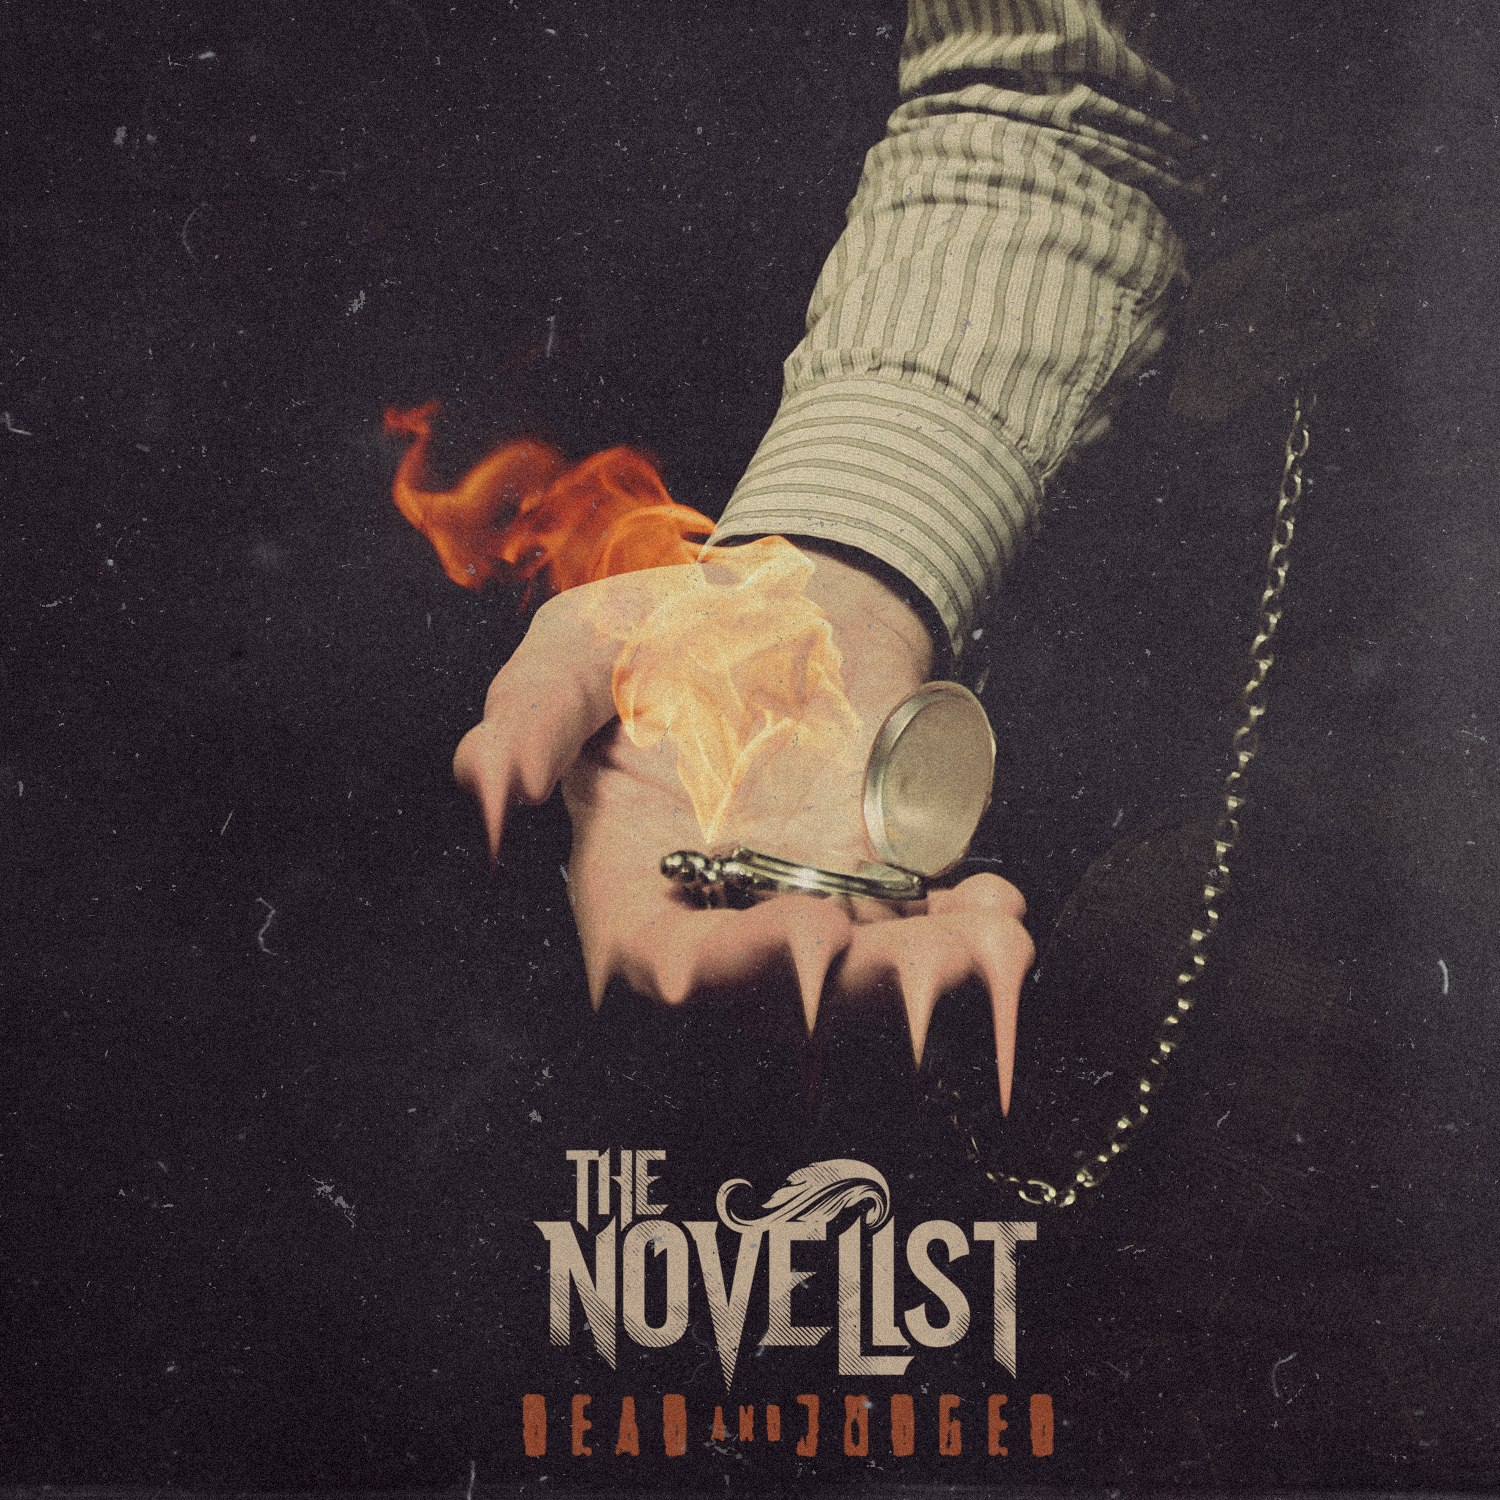 The Novelist - Dead and Judged [EP] (2013)